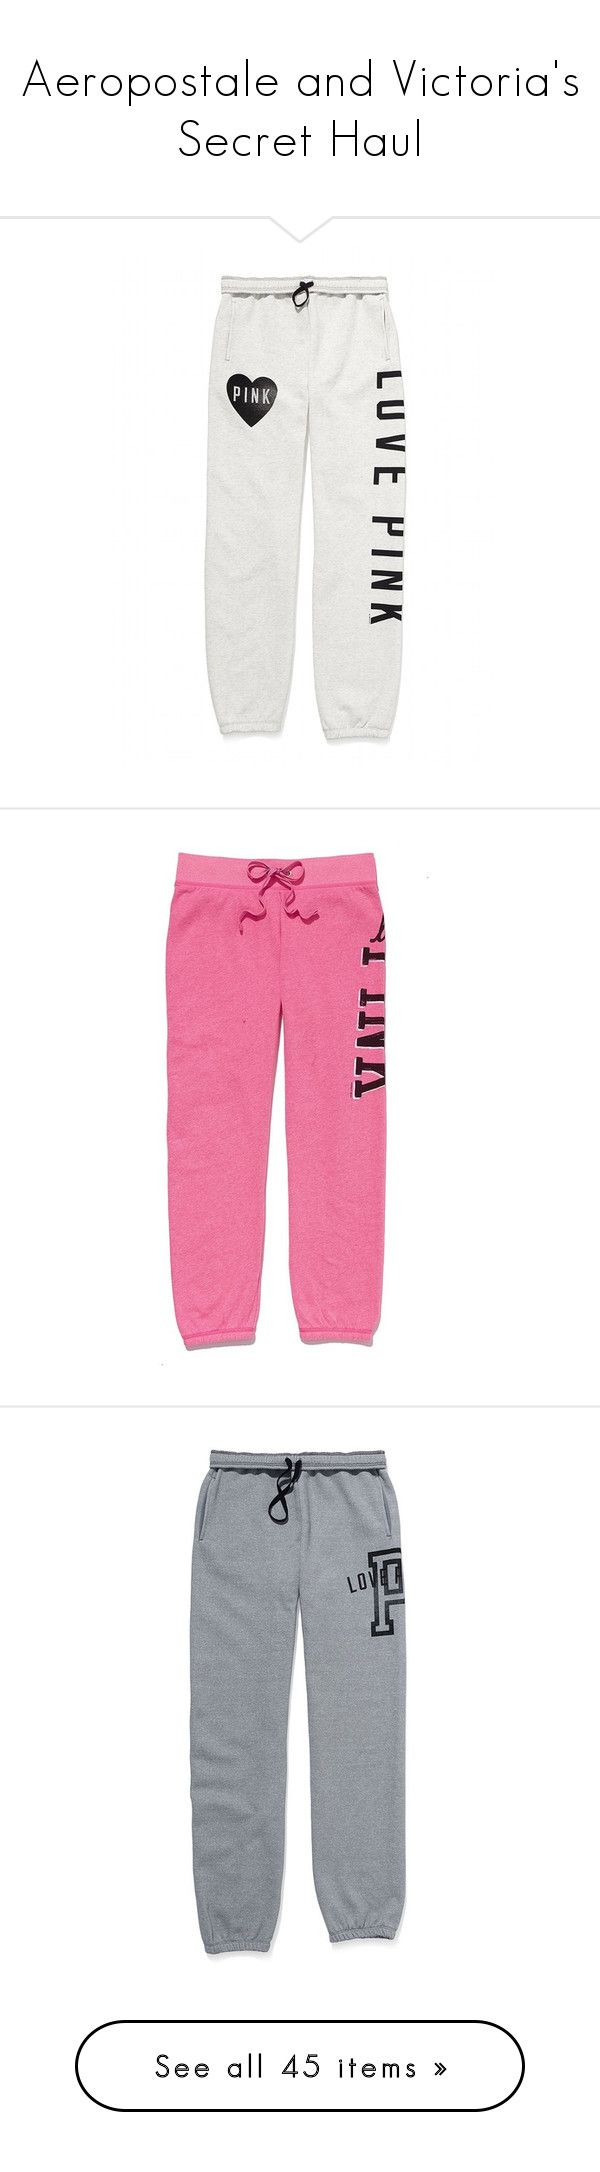 """""""Aeropostale and Victoria's Secret Haul"""" by amyfashion ❤ liked on Polyvore featuring activewear, activewear pants, pants, bottoms, sweatpants, sweats, pajamas, victoria secret activewear, victoria's secret and heavy sweat pants"""